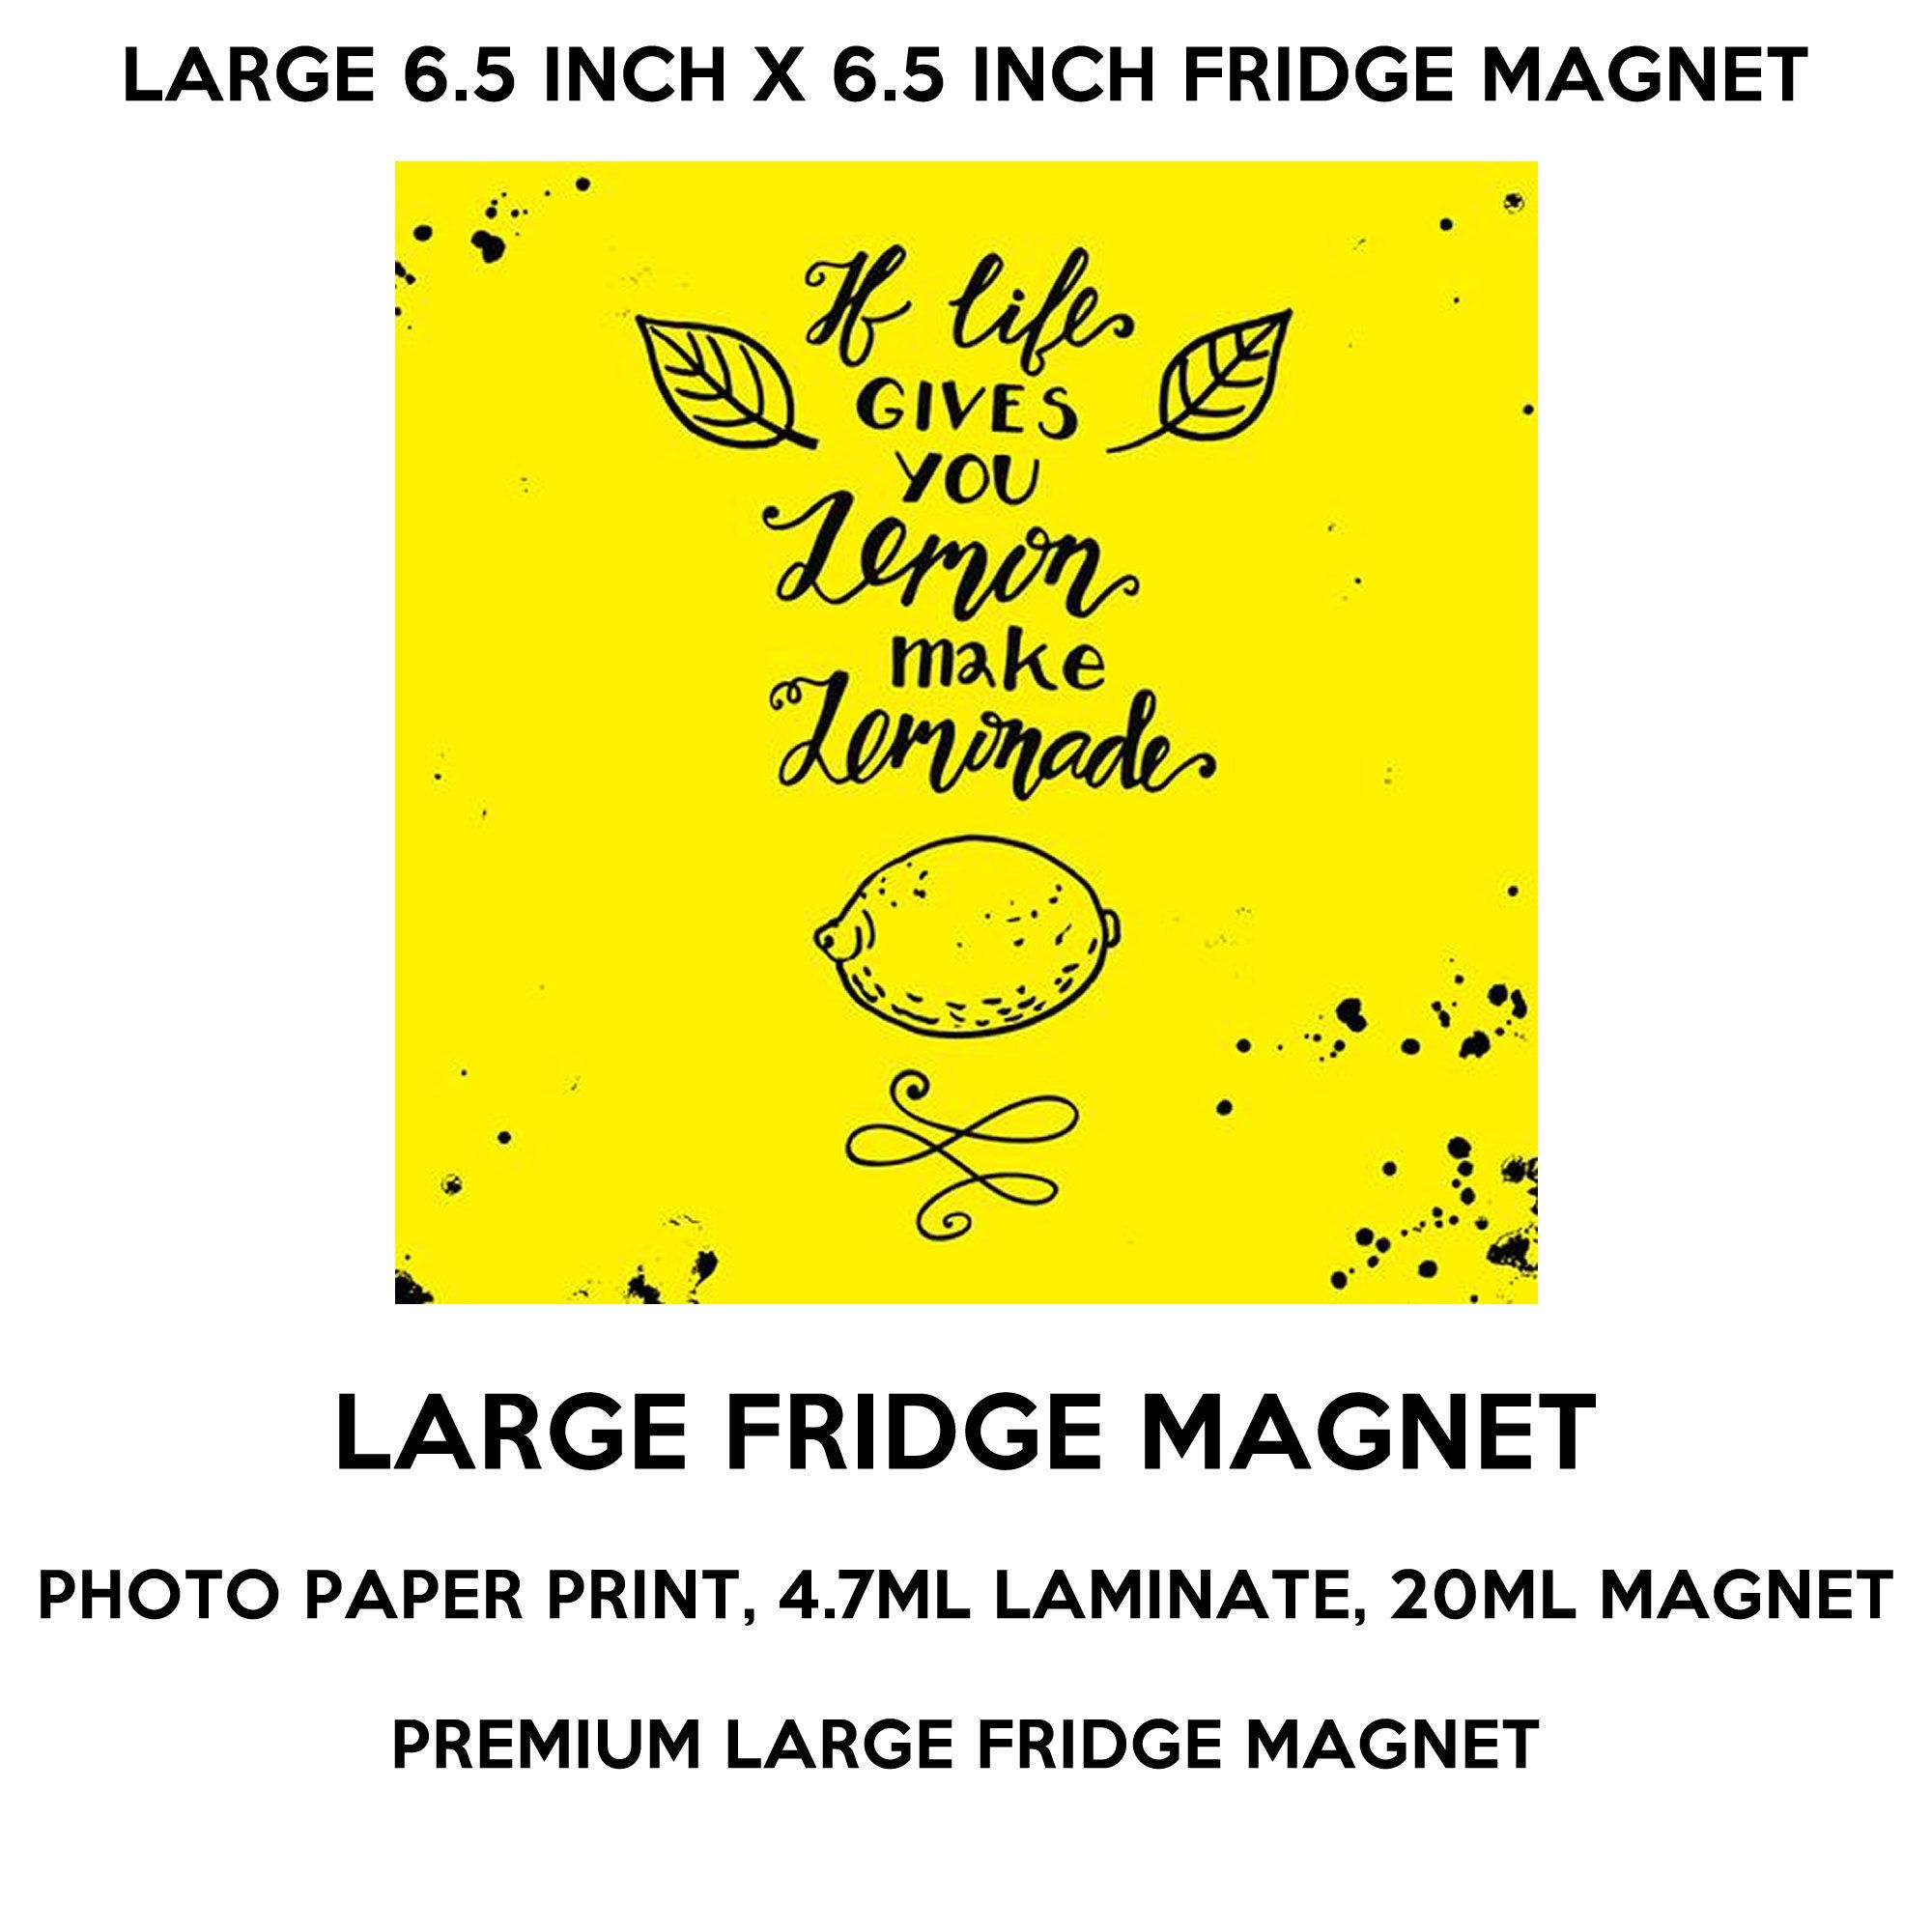 If Life Gives You Lemon Make Lemonade Fridge Magnet Large 6 1 2 X 6 1 2 Inch Premium Fridge Magnet That Stands Out Fridge Magnets Life Photo Magnets